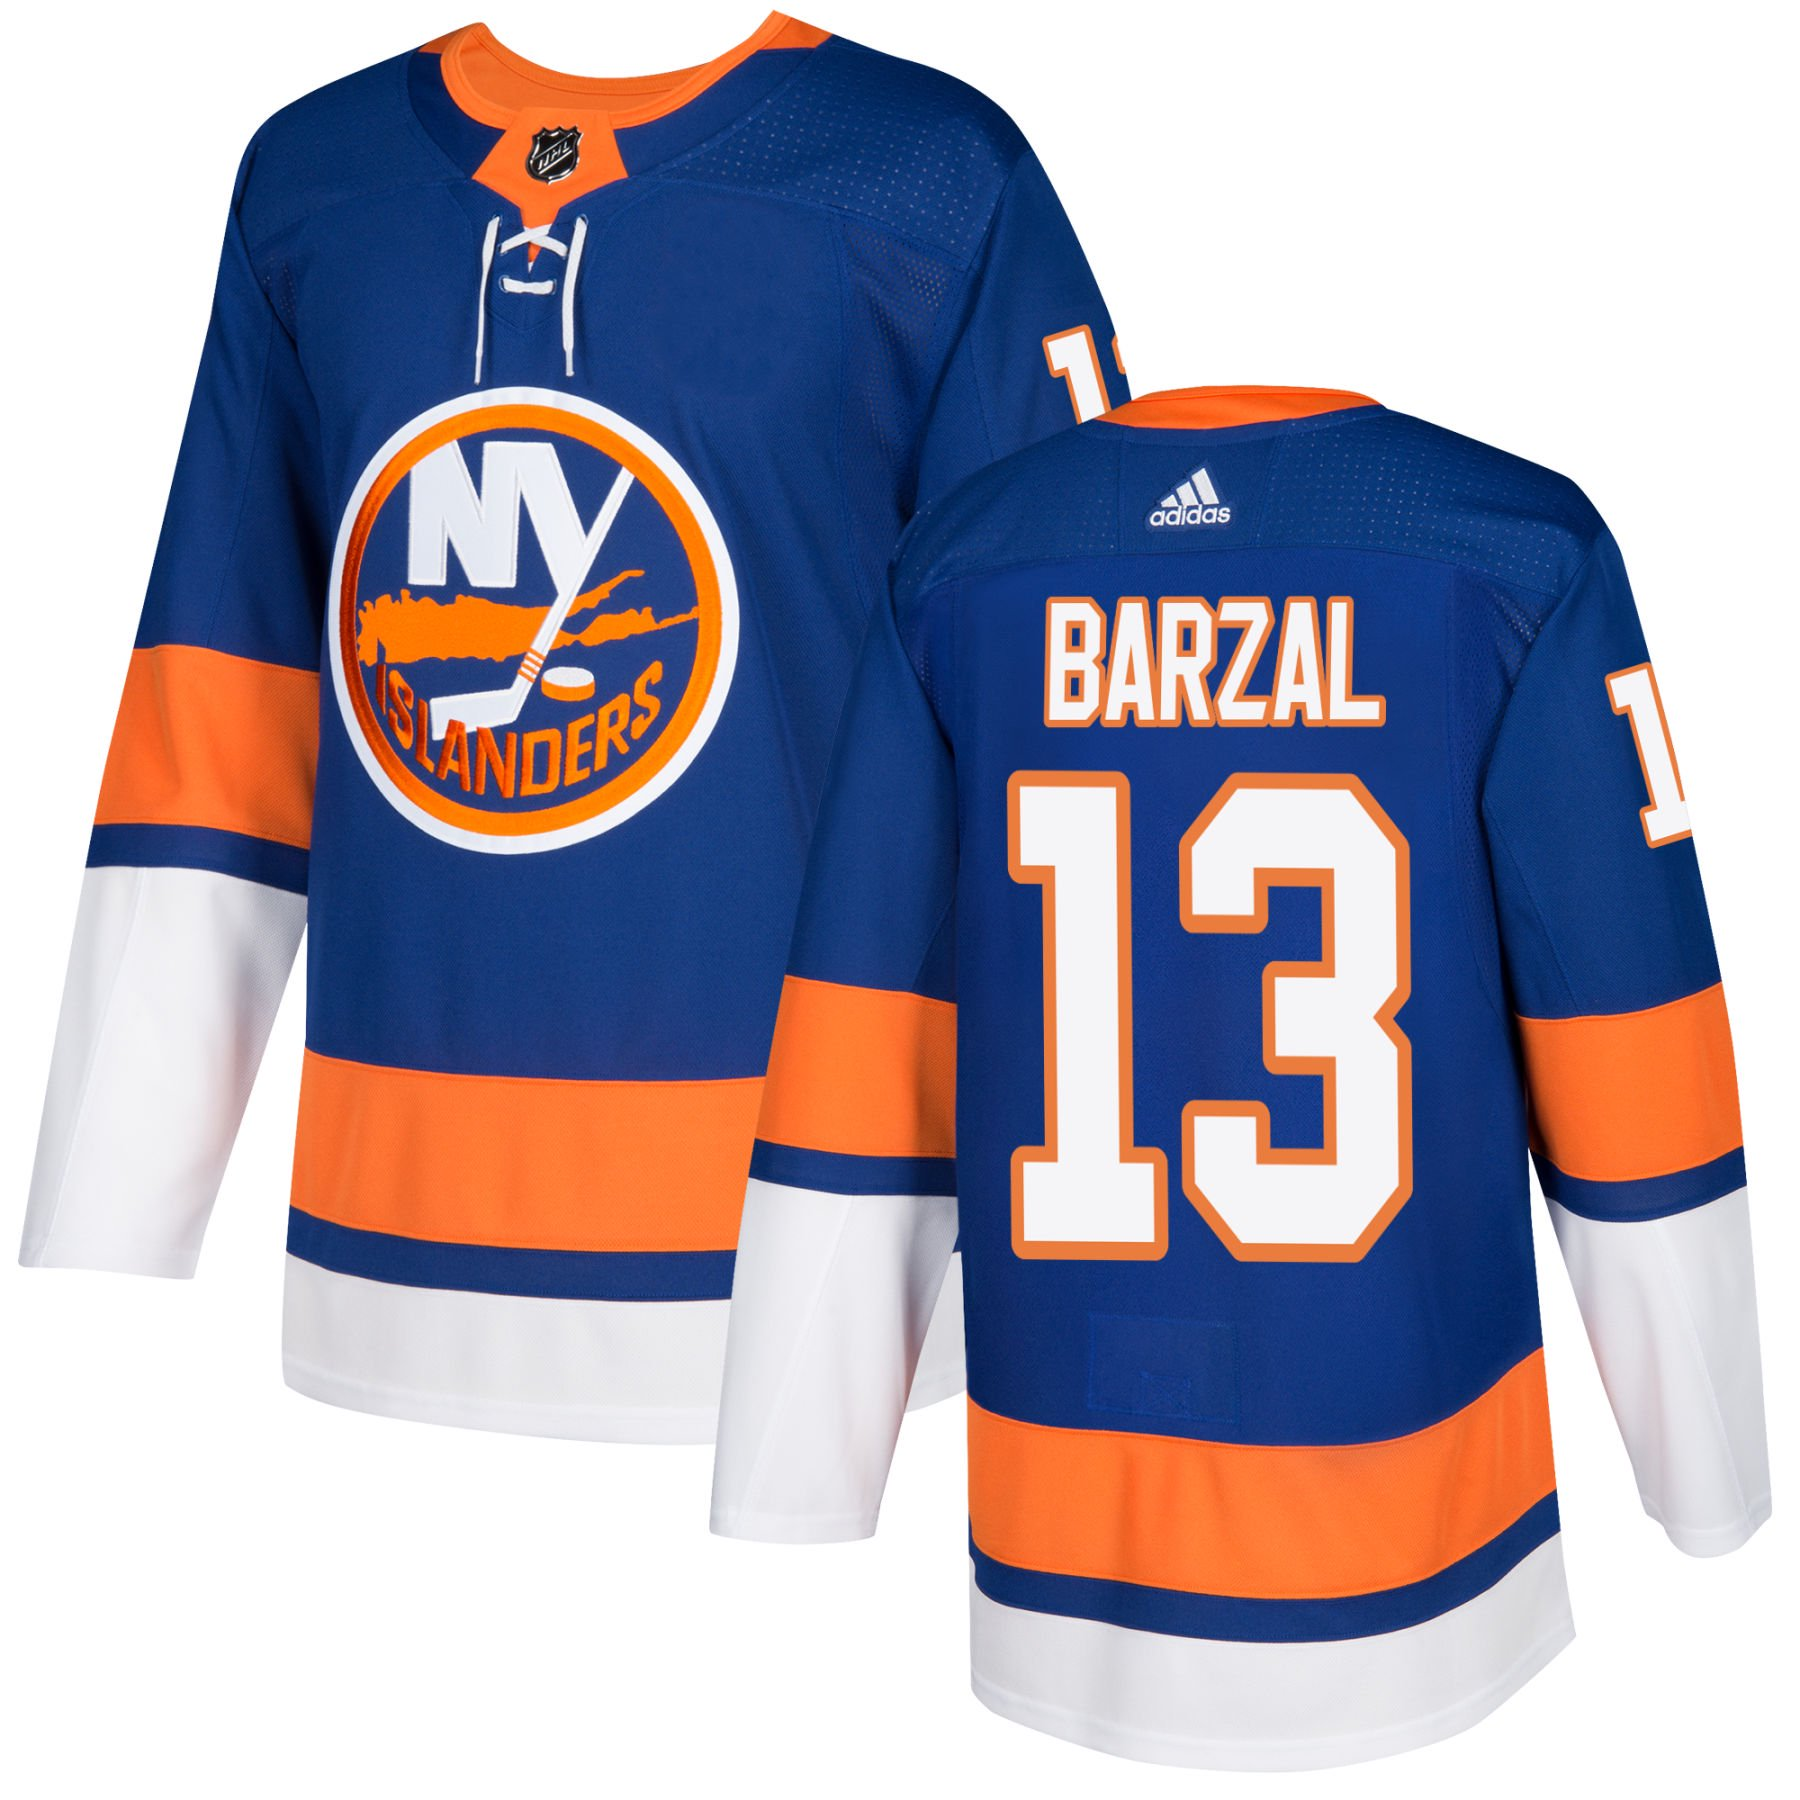 Authentic Mathew - Islanders York Jersey Nhl Stitched Pro Barzal Home Adidas New